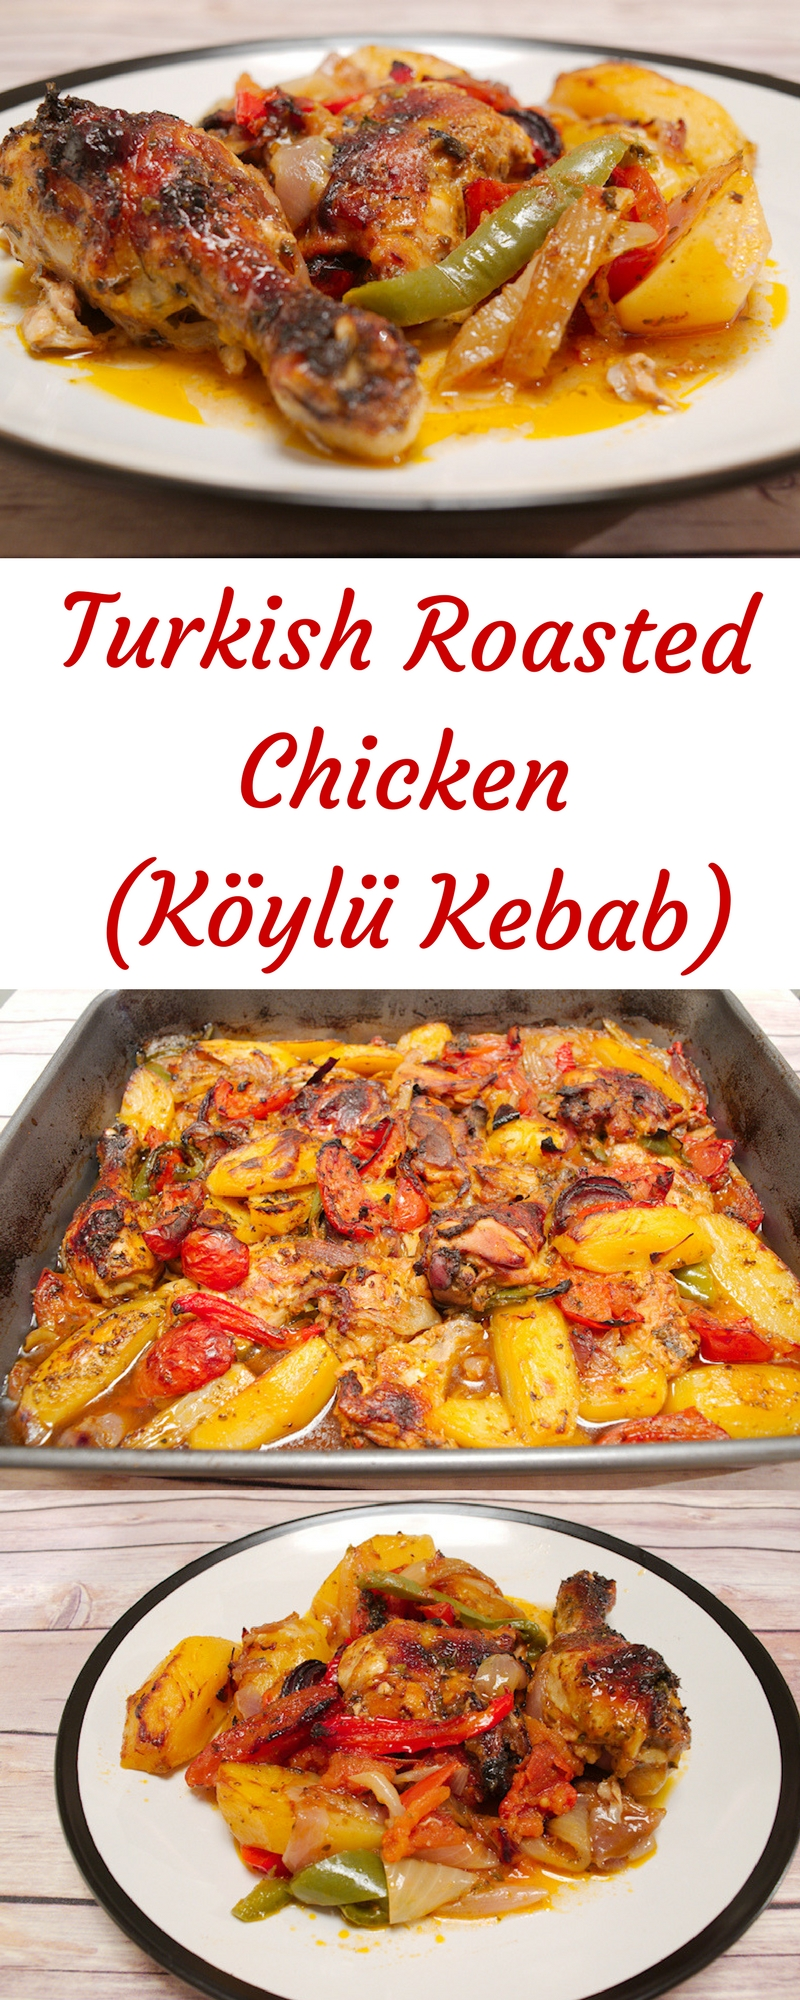 Slowly-Roasted Turkish Chicken with Vegetables (Köylü Kebab)